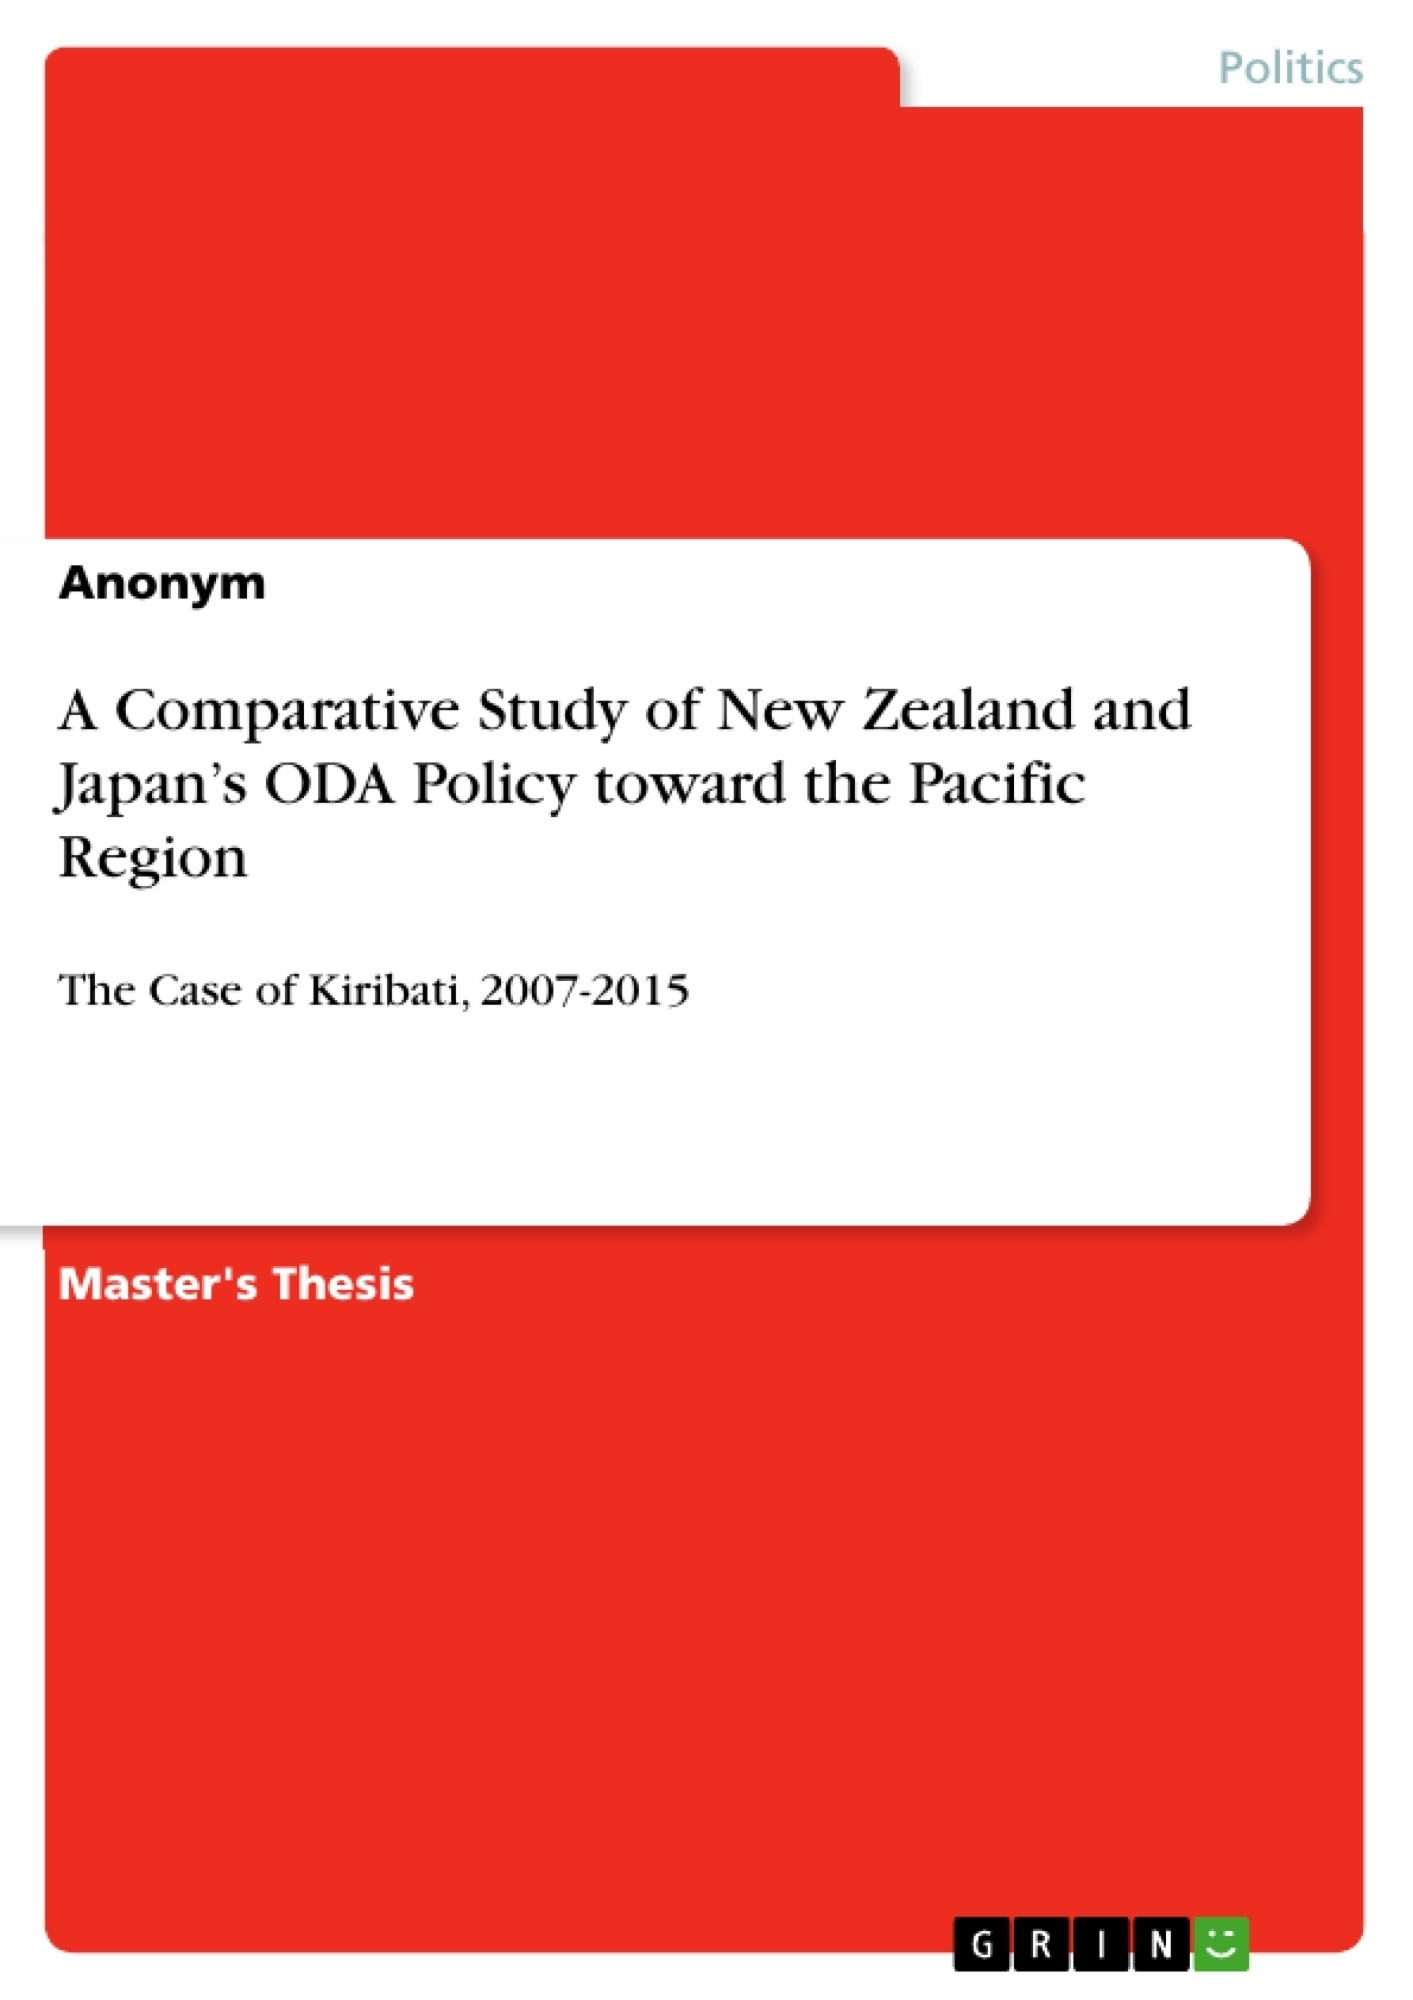 Title: A Comparative Study of New Zealand and Japan's ODA Policy toward the Pacific Region